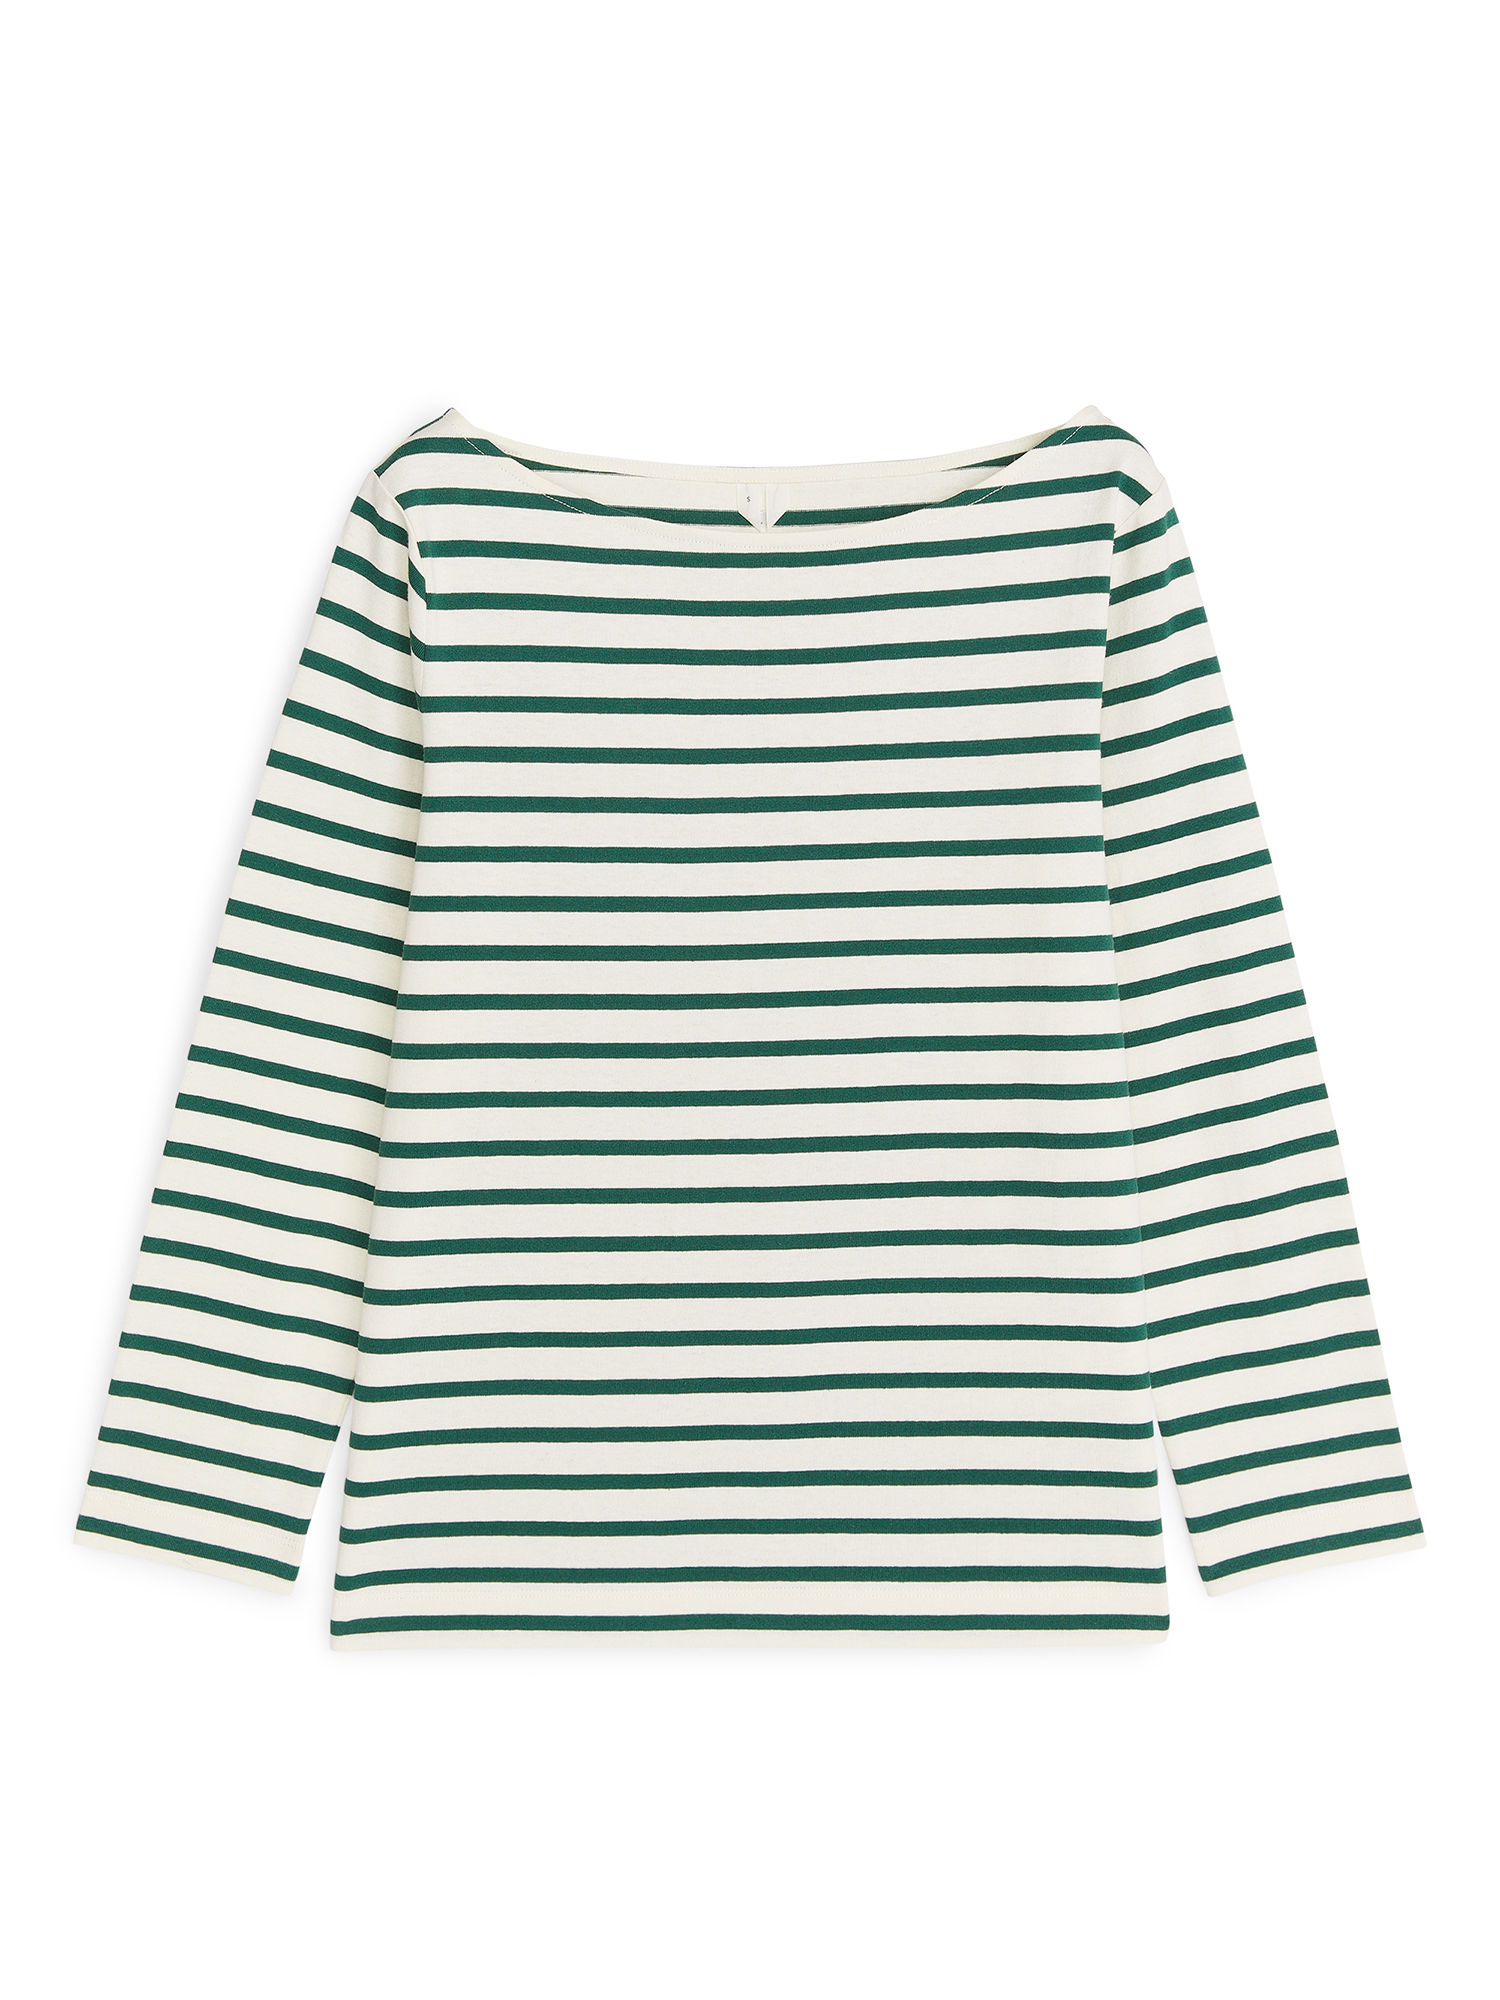 Fabric Swatch image of Arket striped cotton top in green